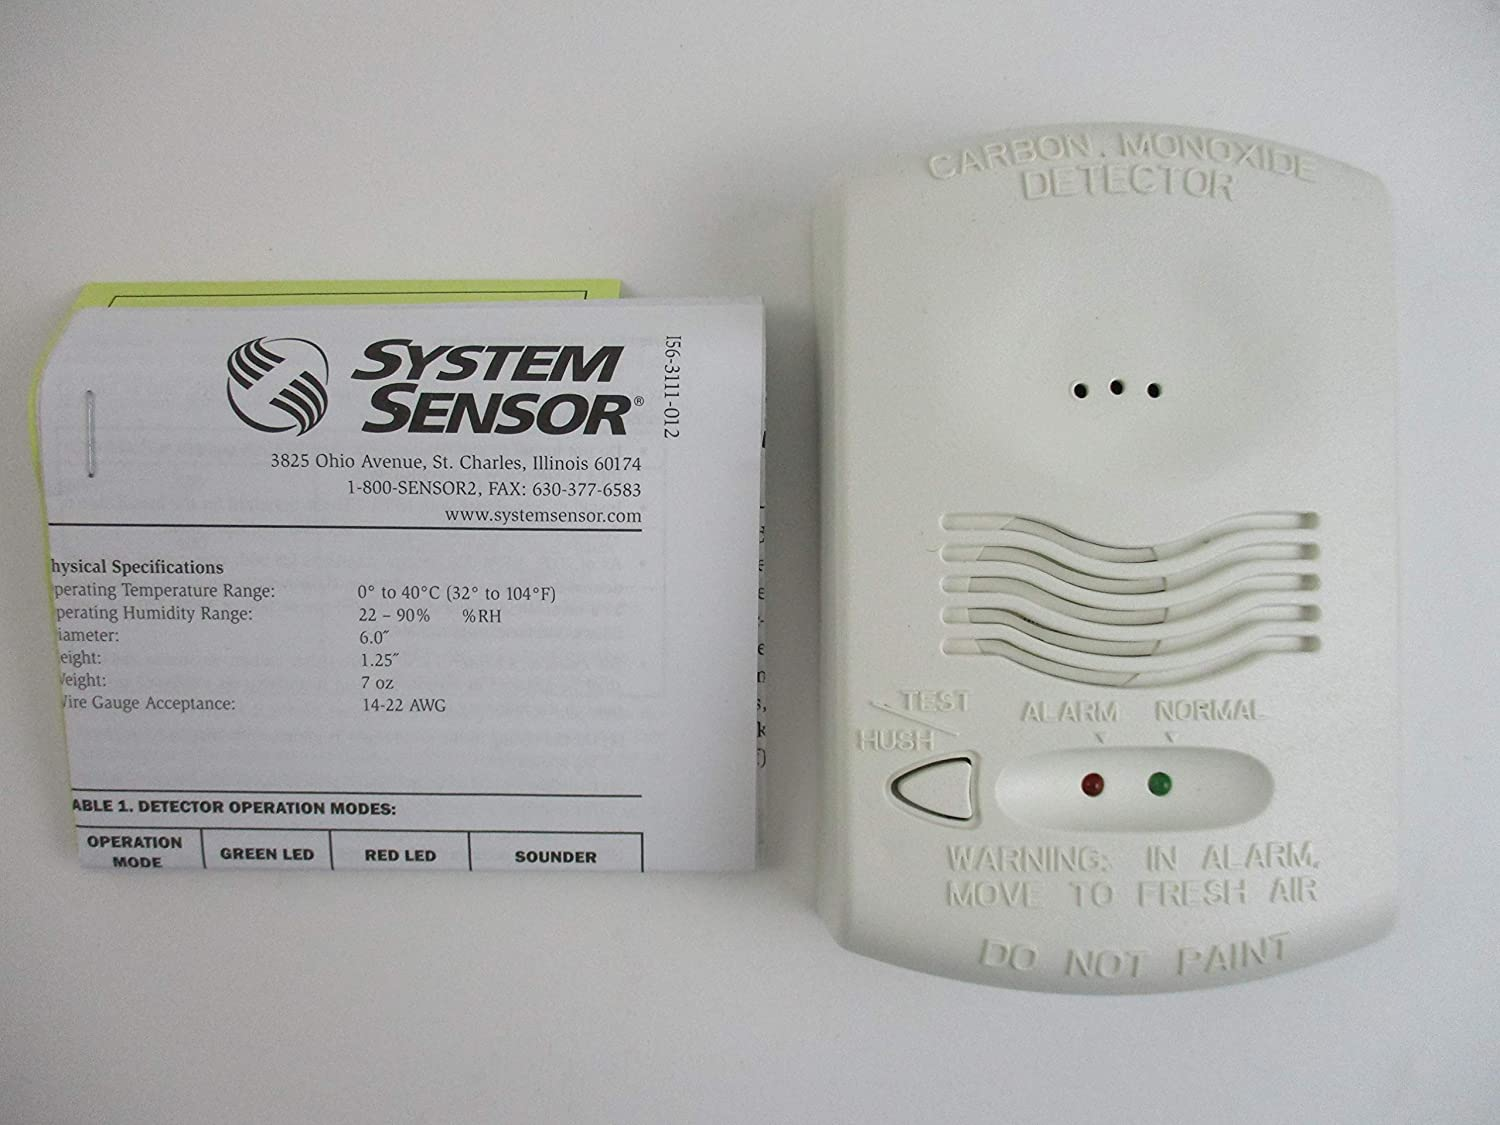 SYSTEM SENSOR CO1224T12/24 volt, 4-wire, system-monitored C02 carbon monoxide detector with RealTest Technology: Amazon.com: Industrial & Scientific